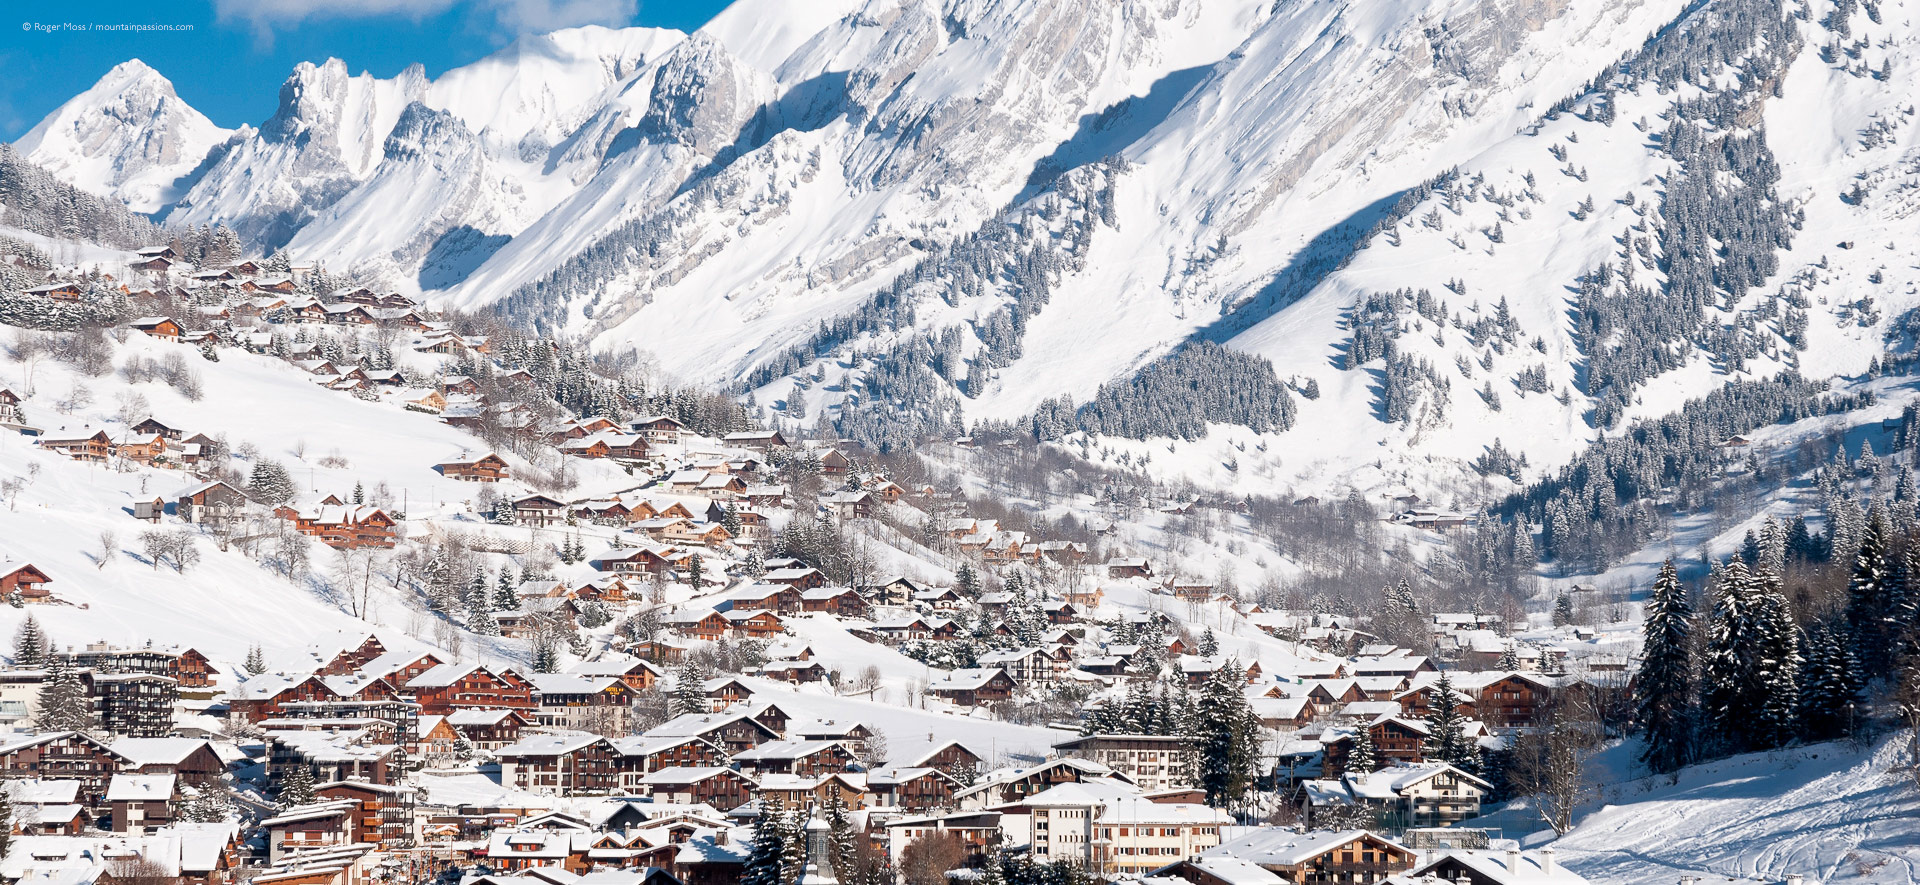 Wide view of La Clusaz rooftops against a backdrop of the snow-covered Aravis mountains